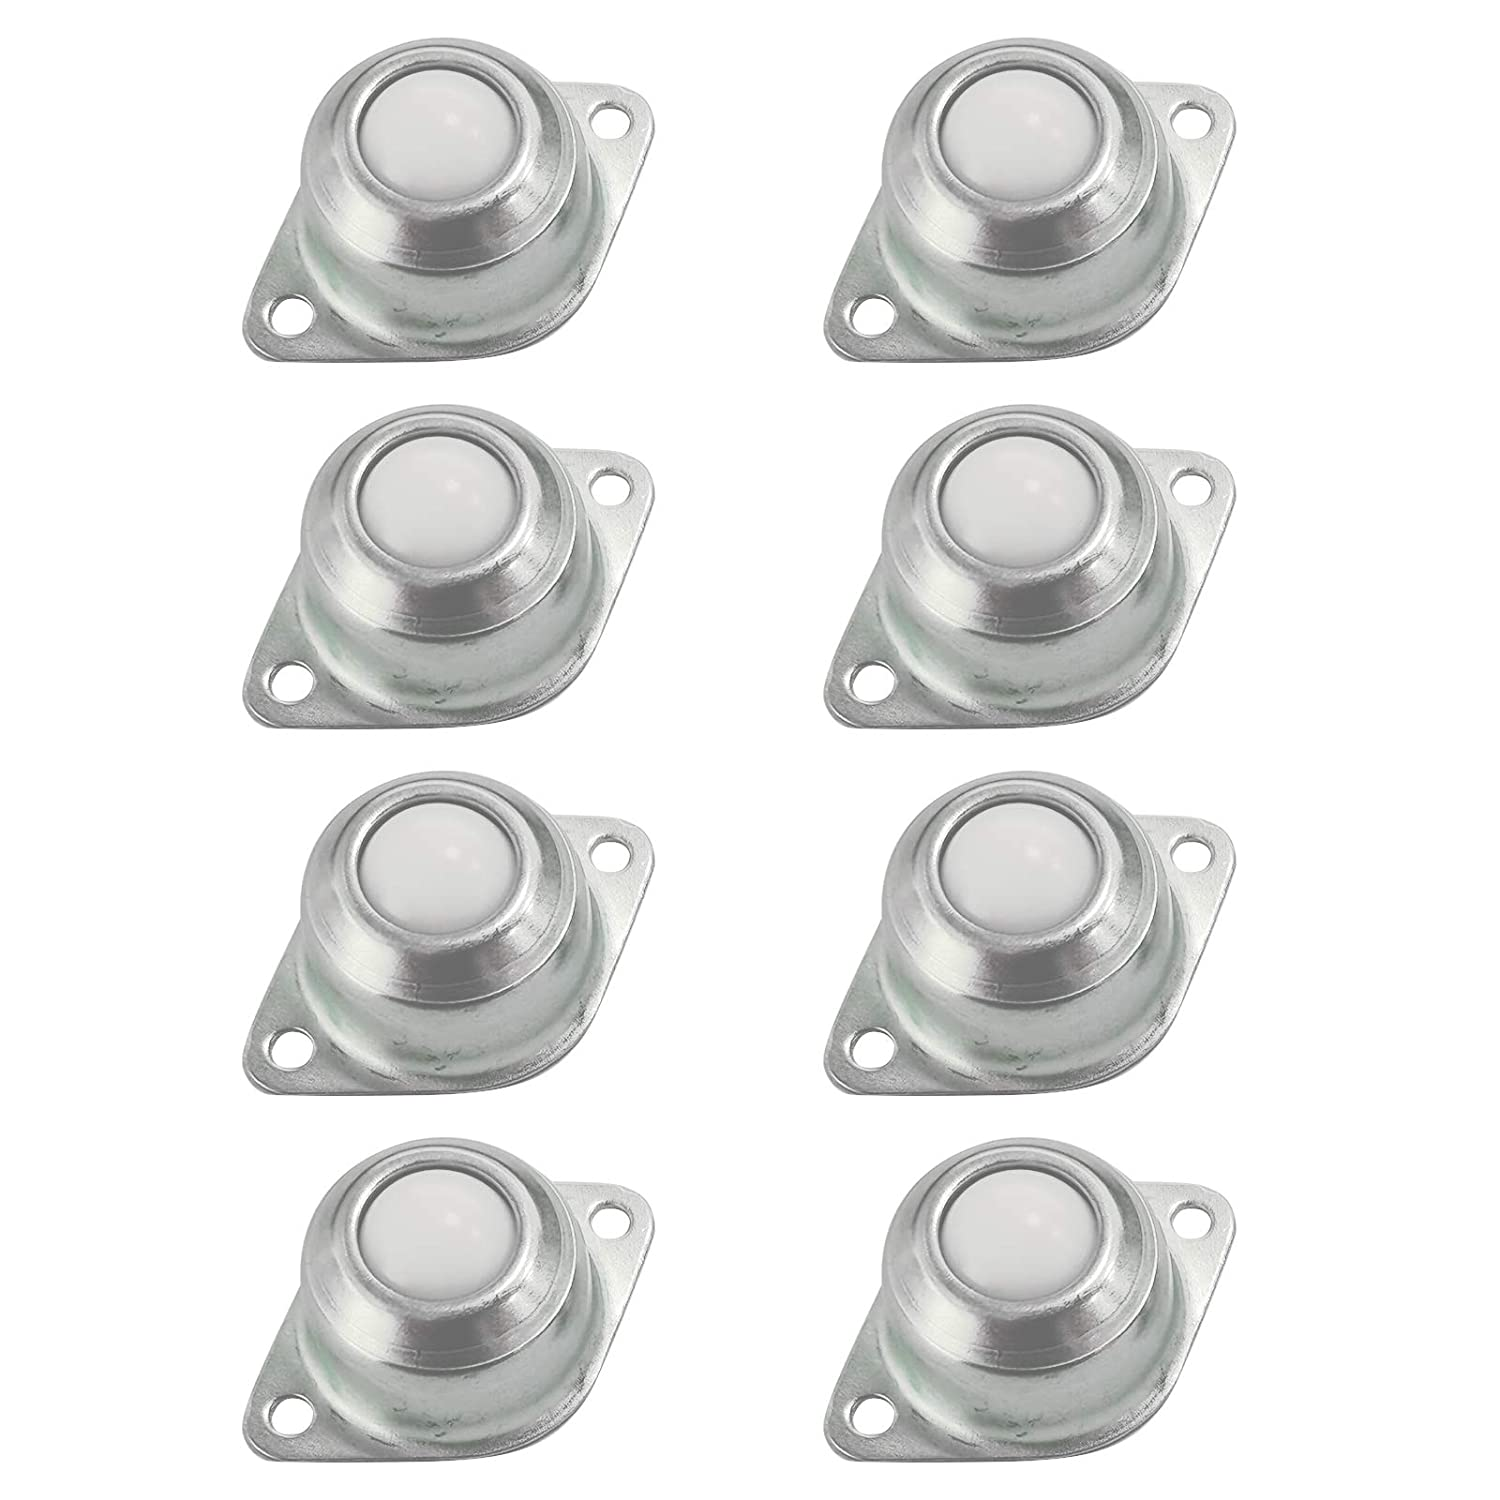 8 pcs Transfer Bearing Ball Nylon Ball Transfer Bearing Ball Bearing Transferring Ball Wheel Stainless Steel Nylon Transport Roller with Screwdriver and Screws for Transmission Furniture Wheelchair